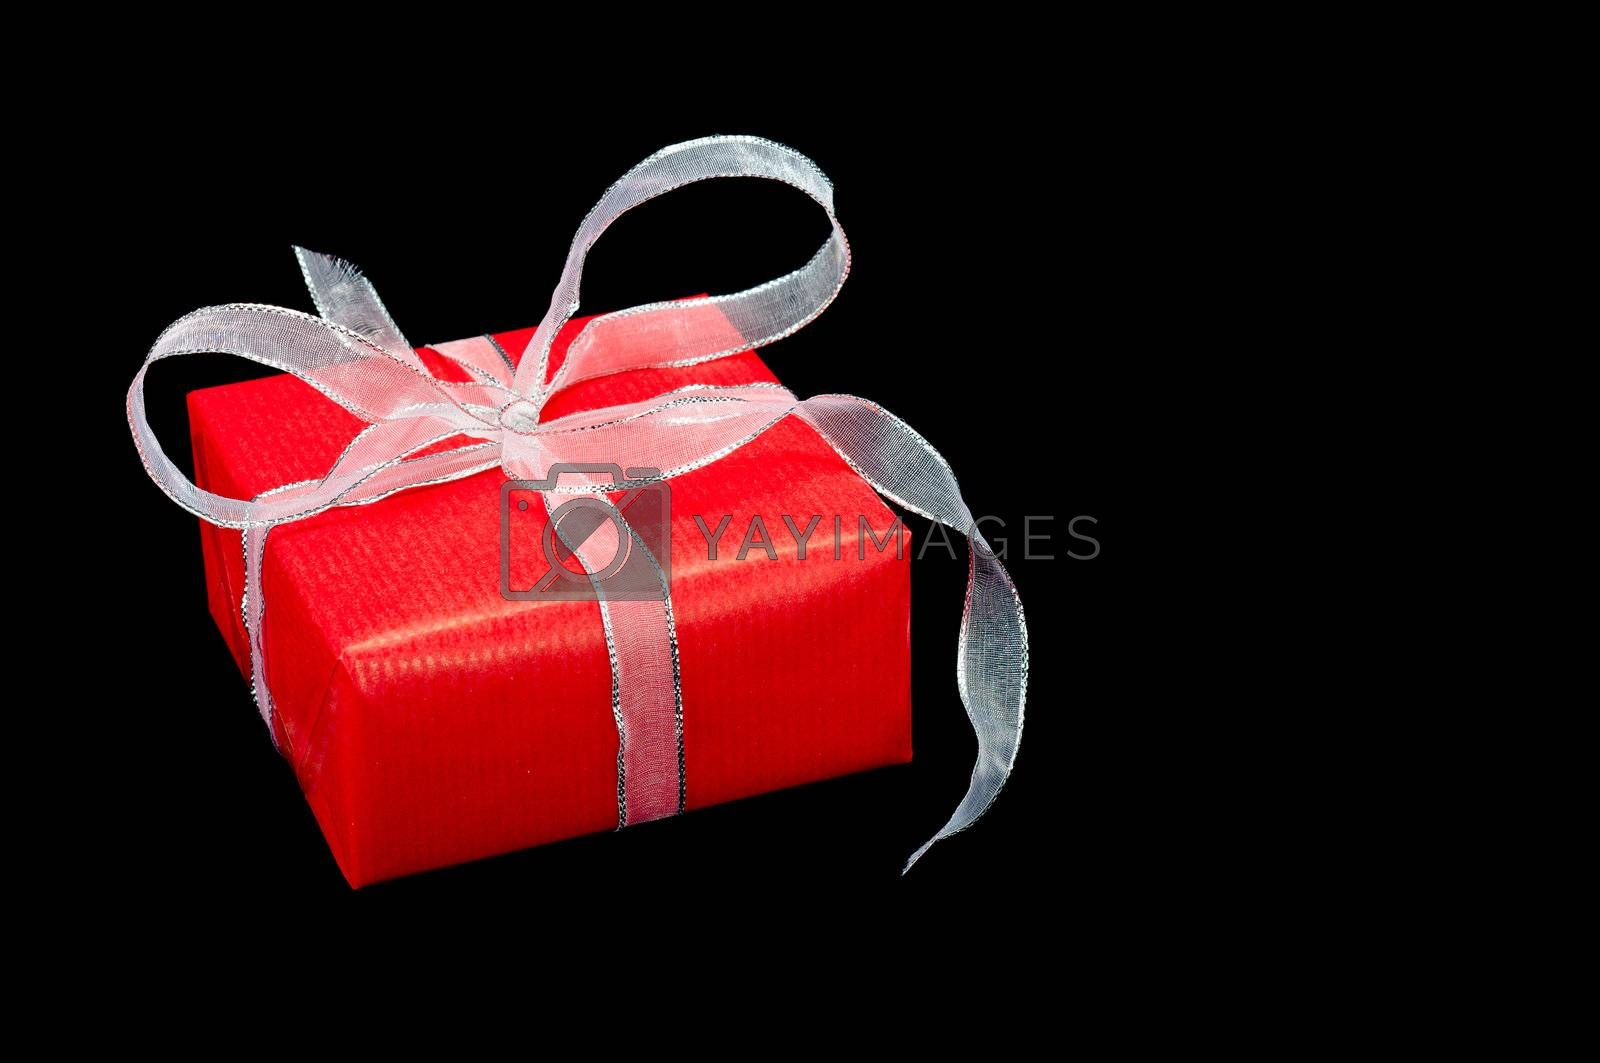 Royalty free image of Red and Silver Xmas Gift Box on Black by timh